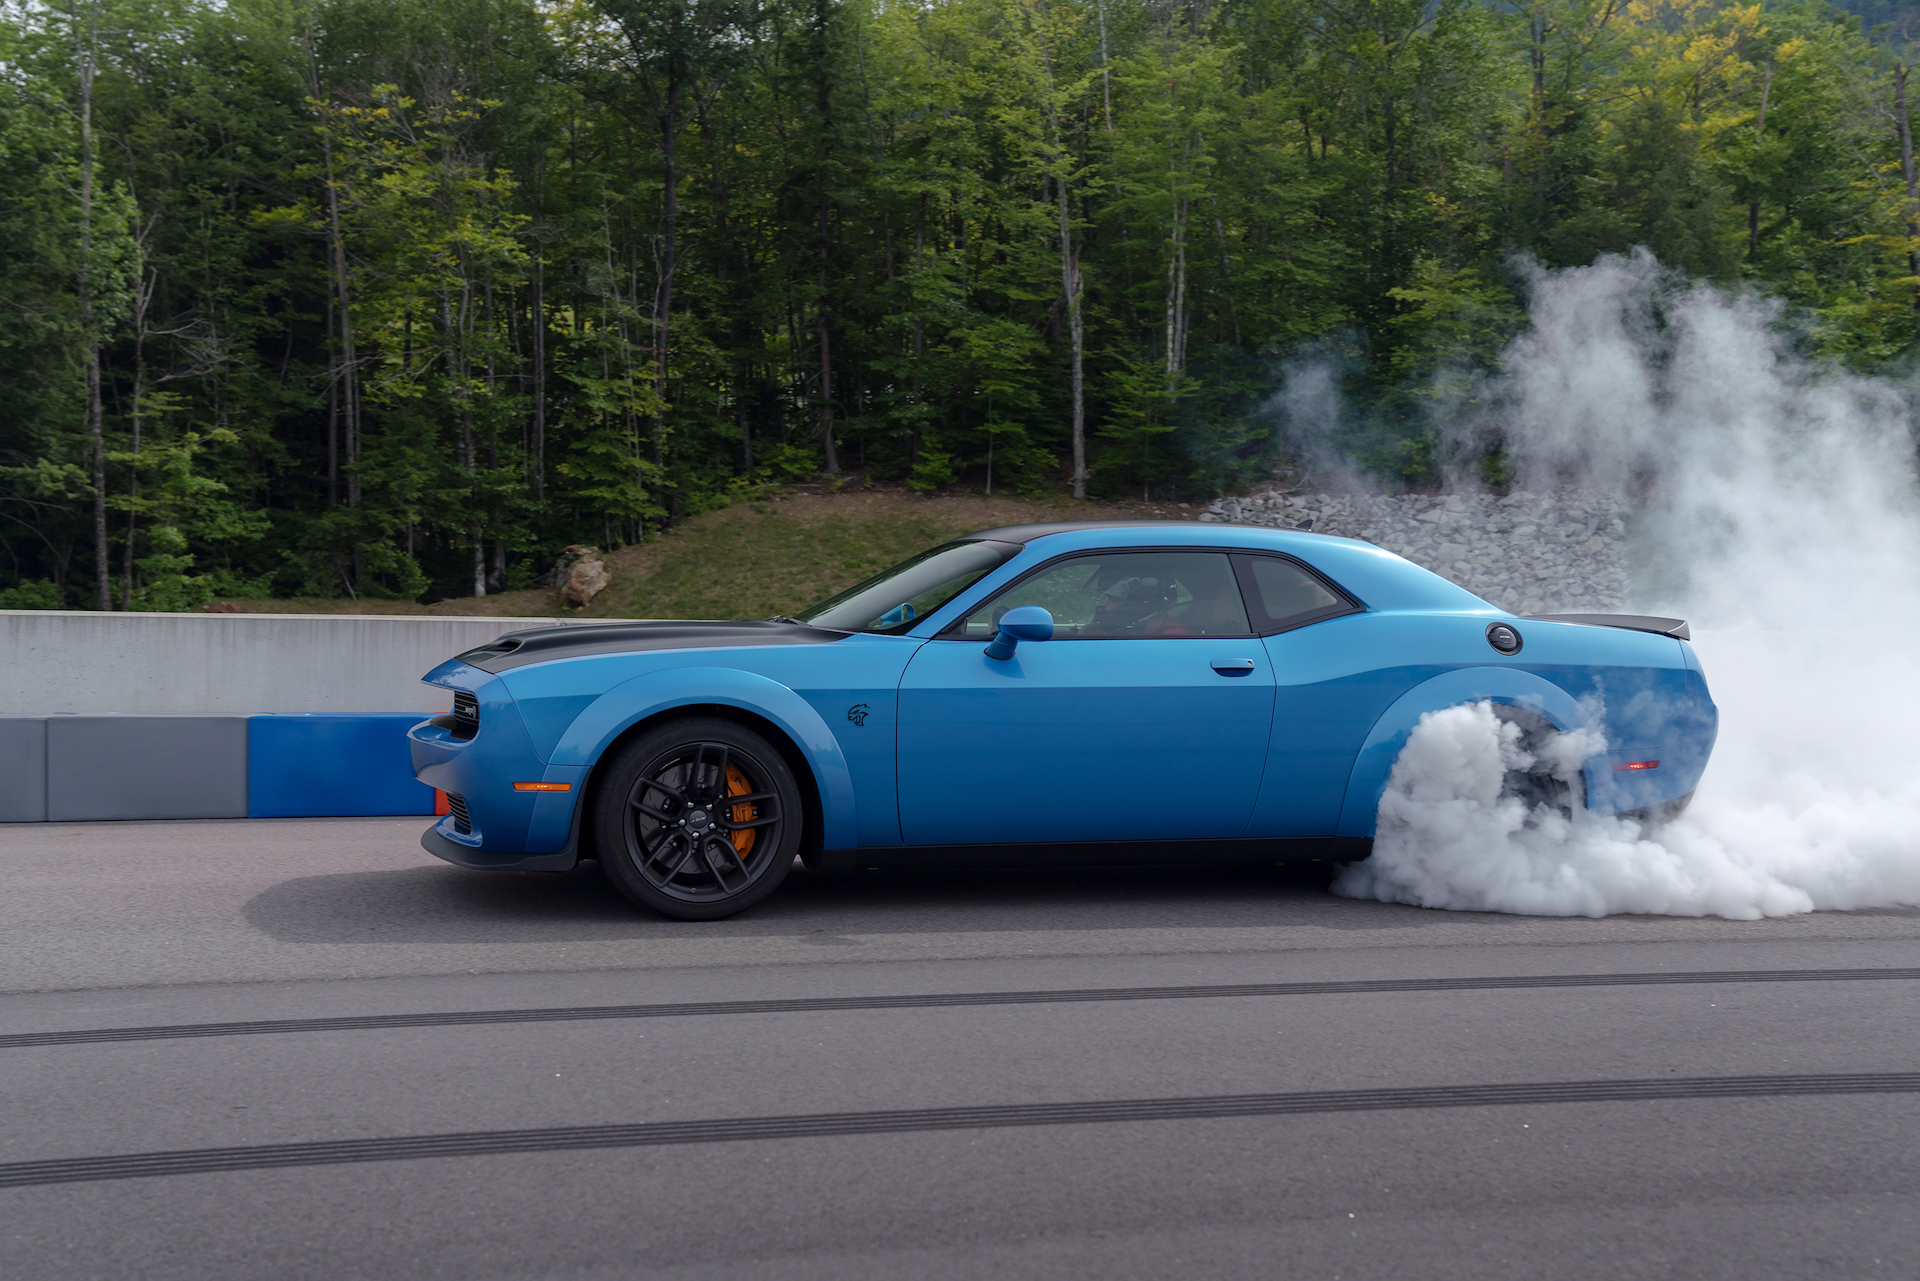 Challenger Hellcat For Sale >> Dodge Challenger outsells Camaro in 2018, but Mustang still king